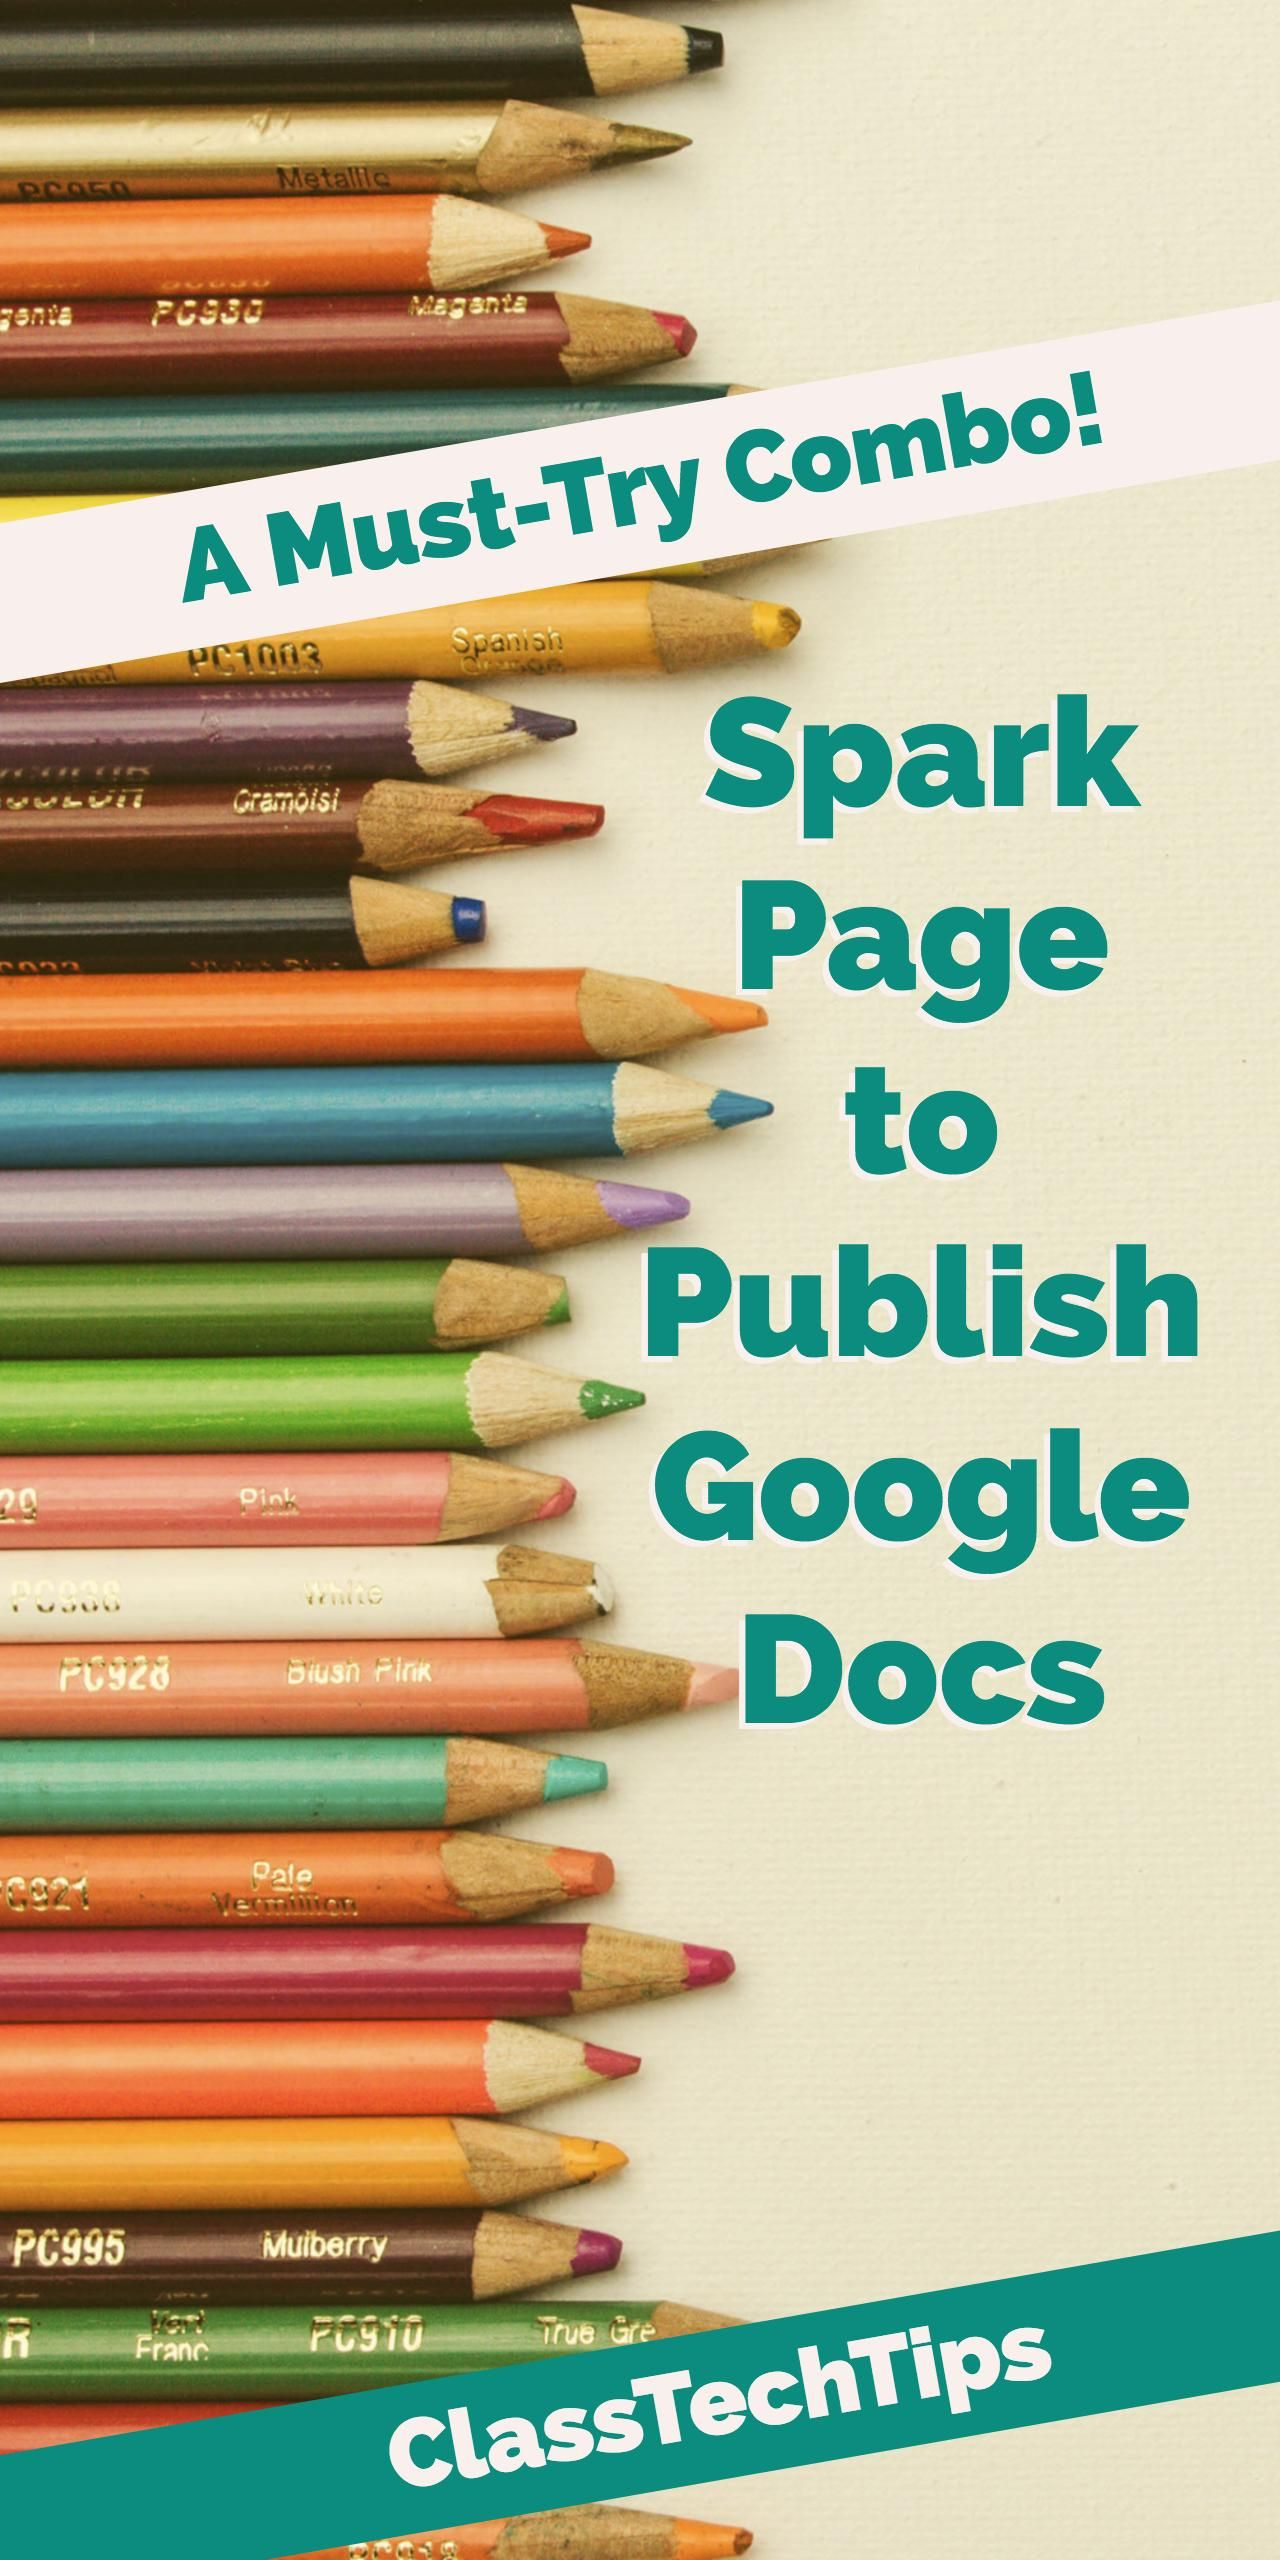 Spark Page to Publish Google Docs A MustTry Combo